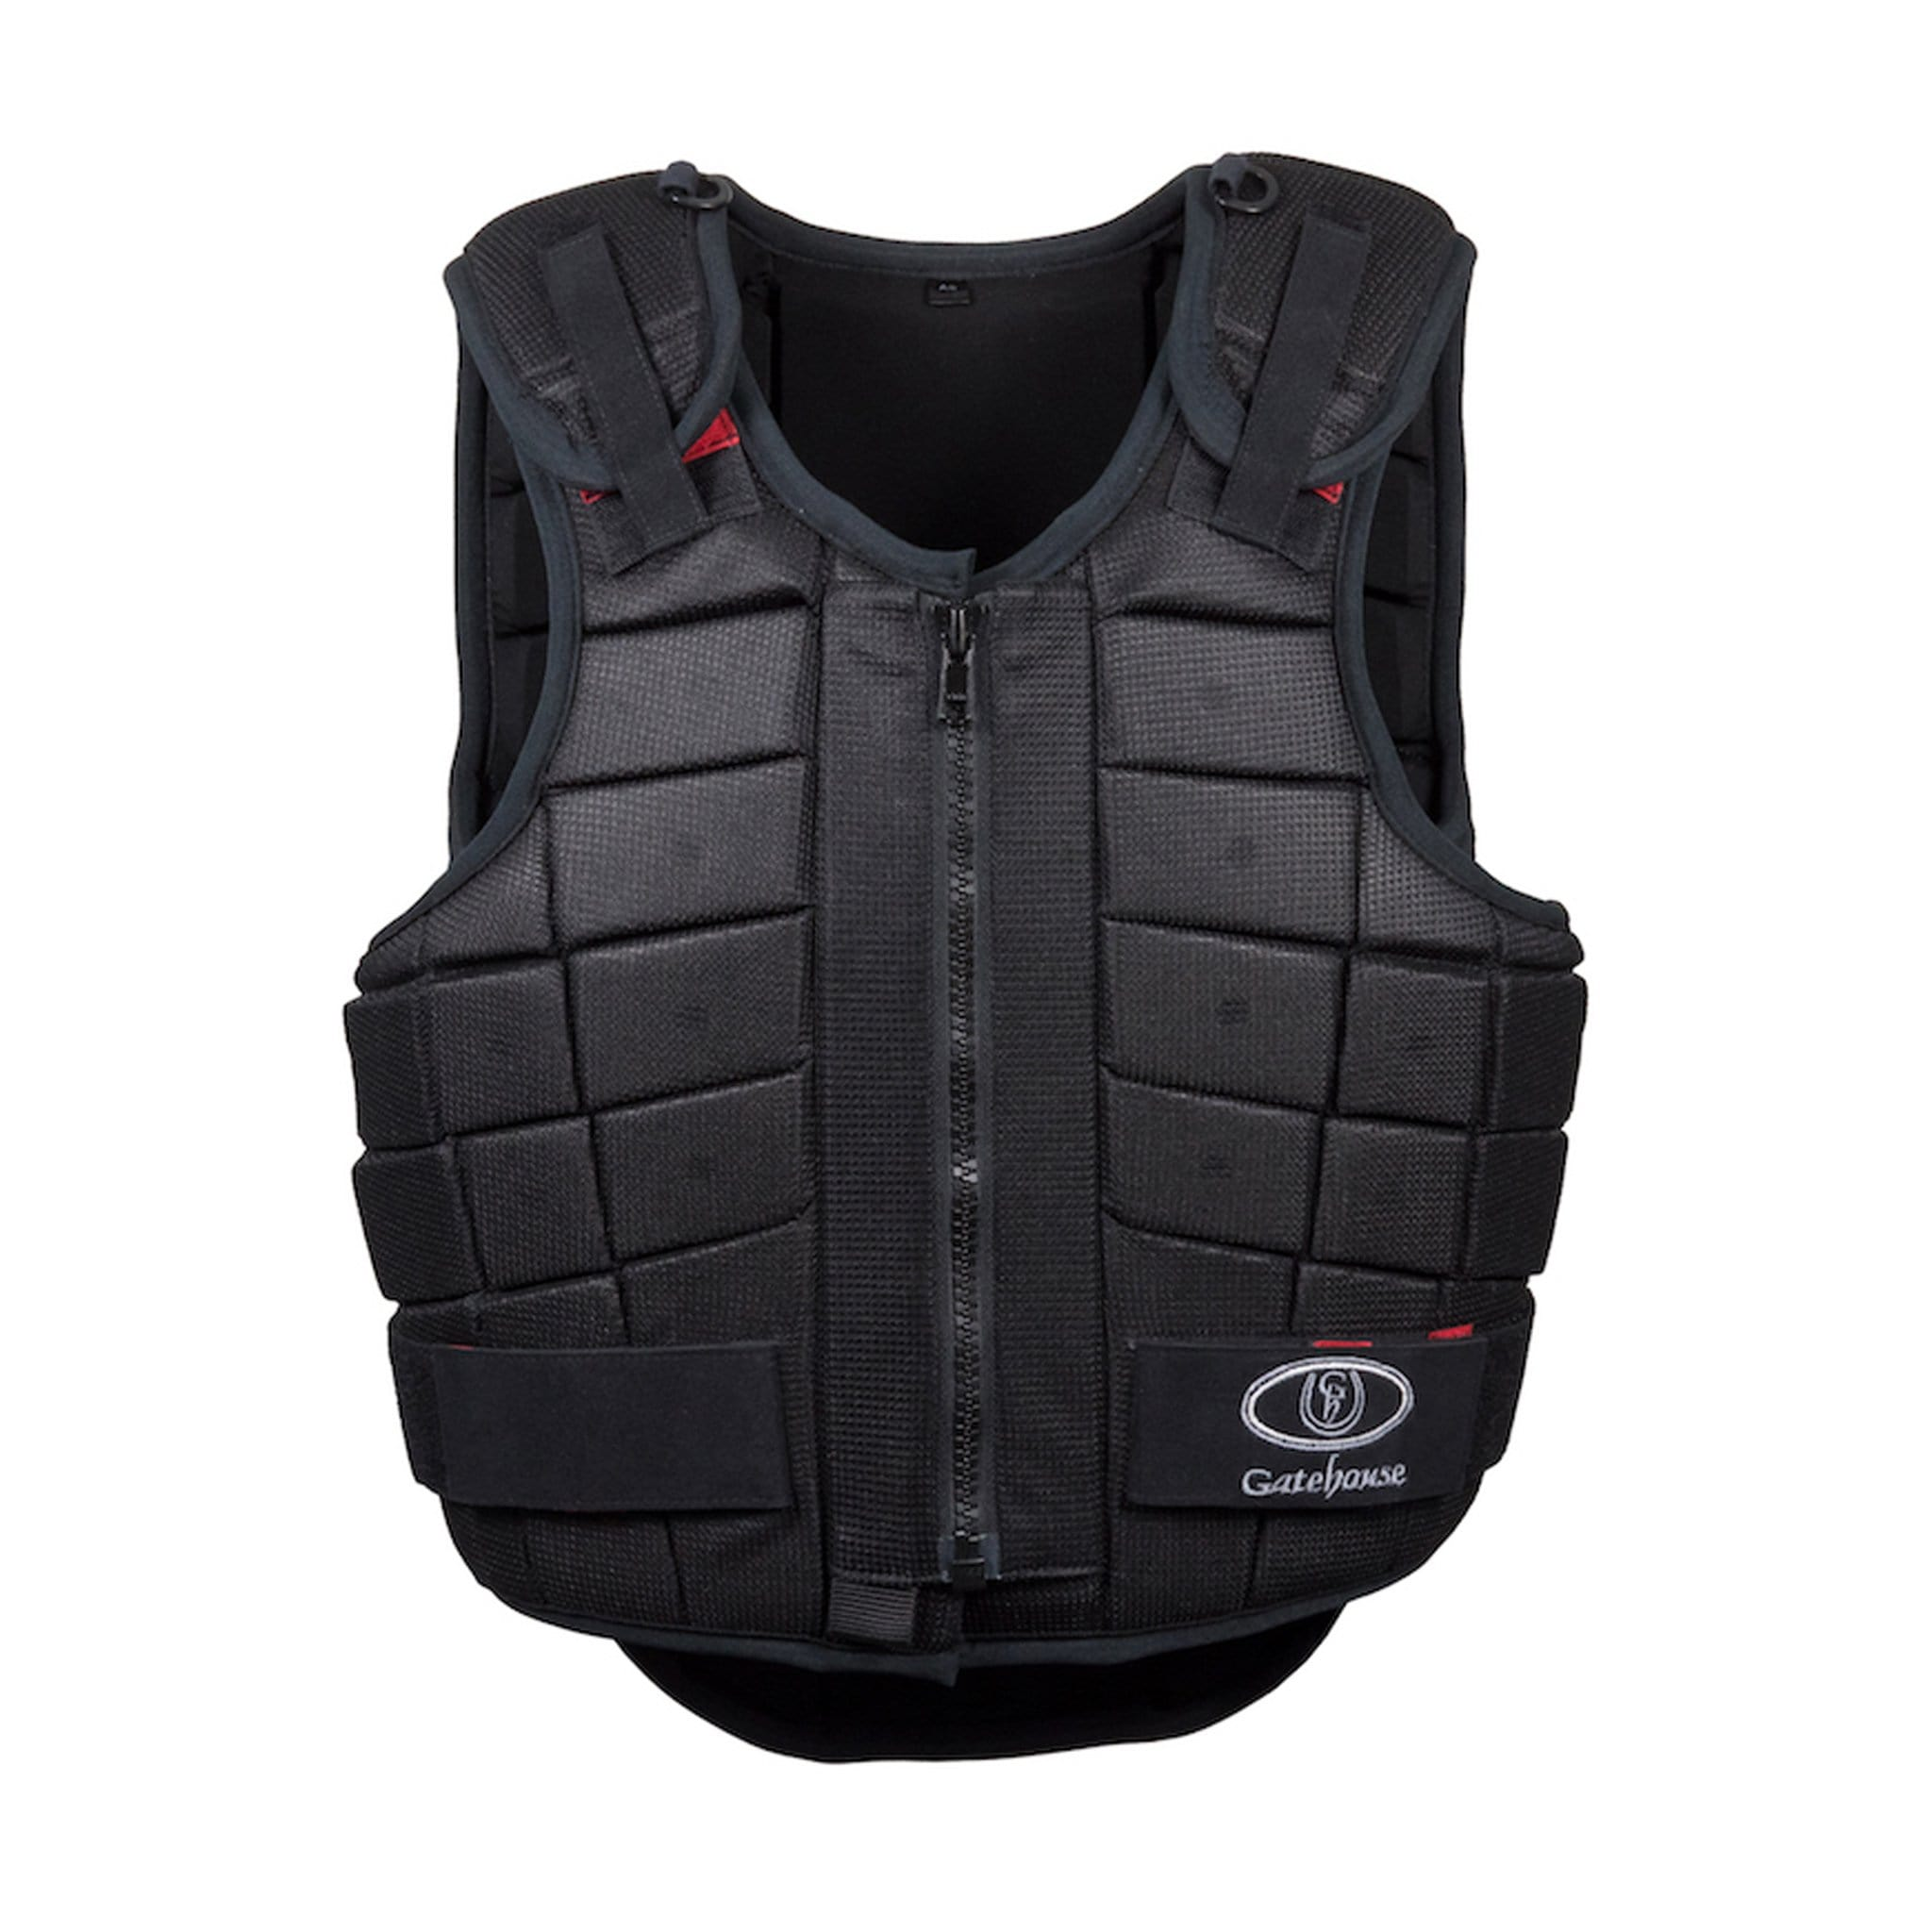 Gatehouse Superflex Sport Childs Body Protector GAT702118